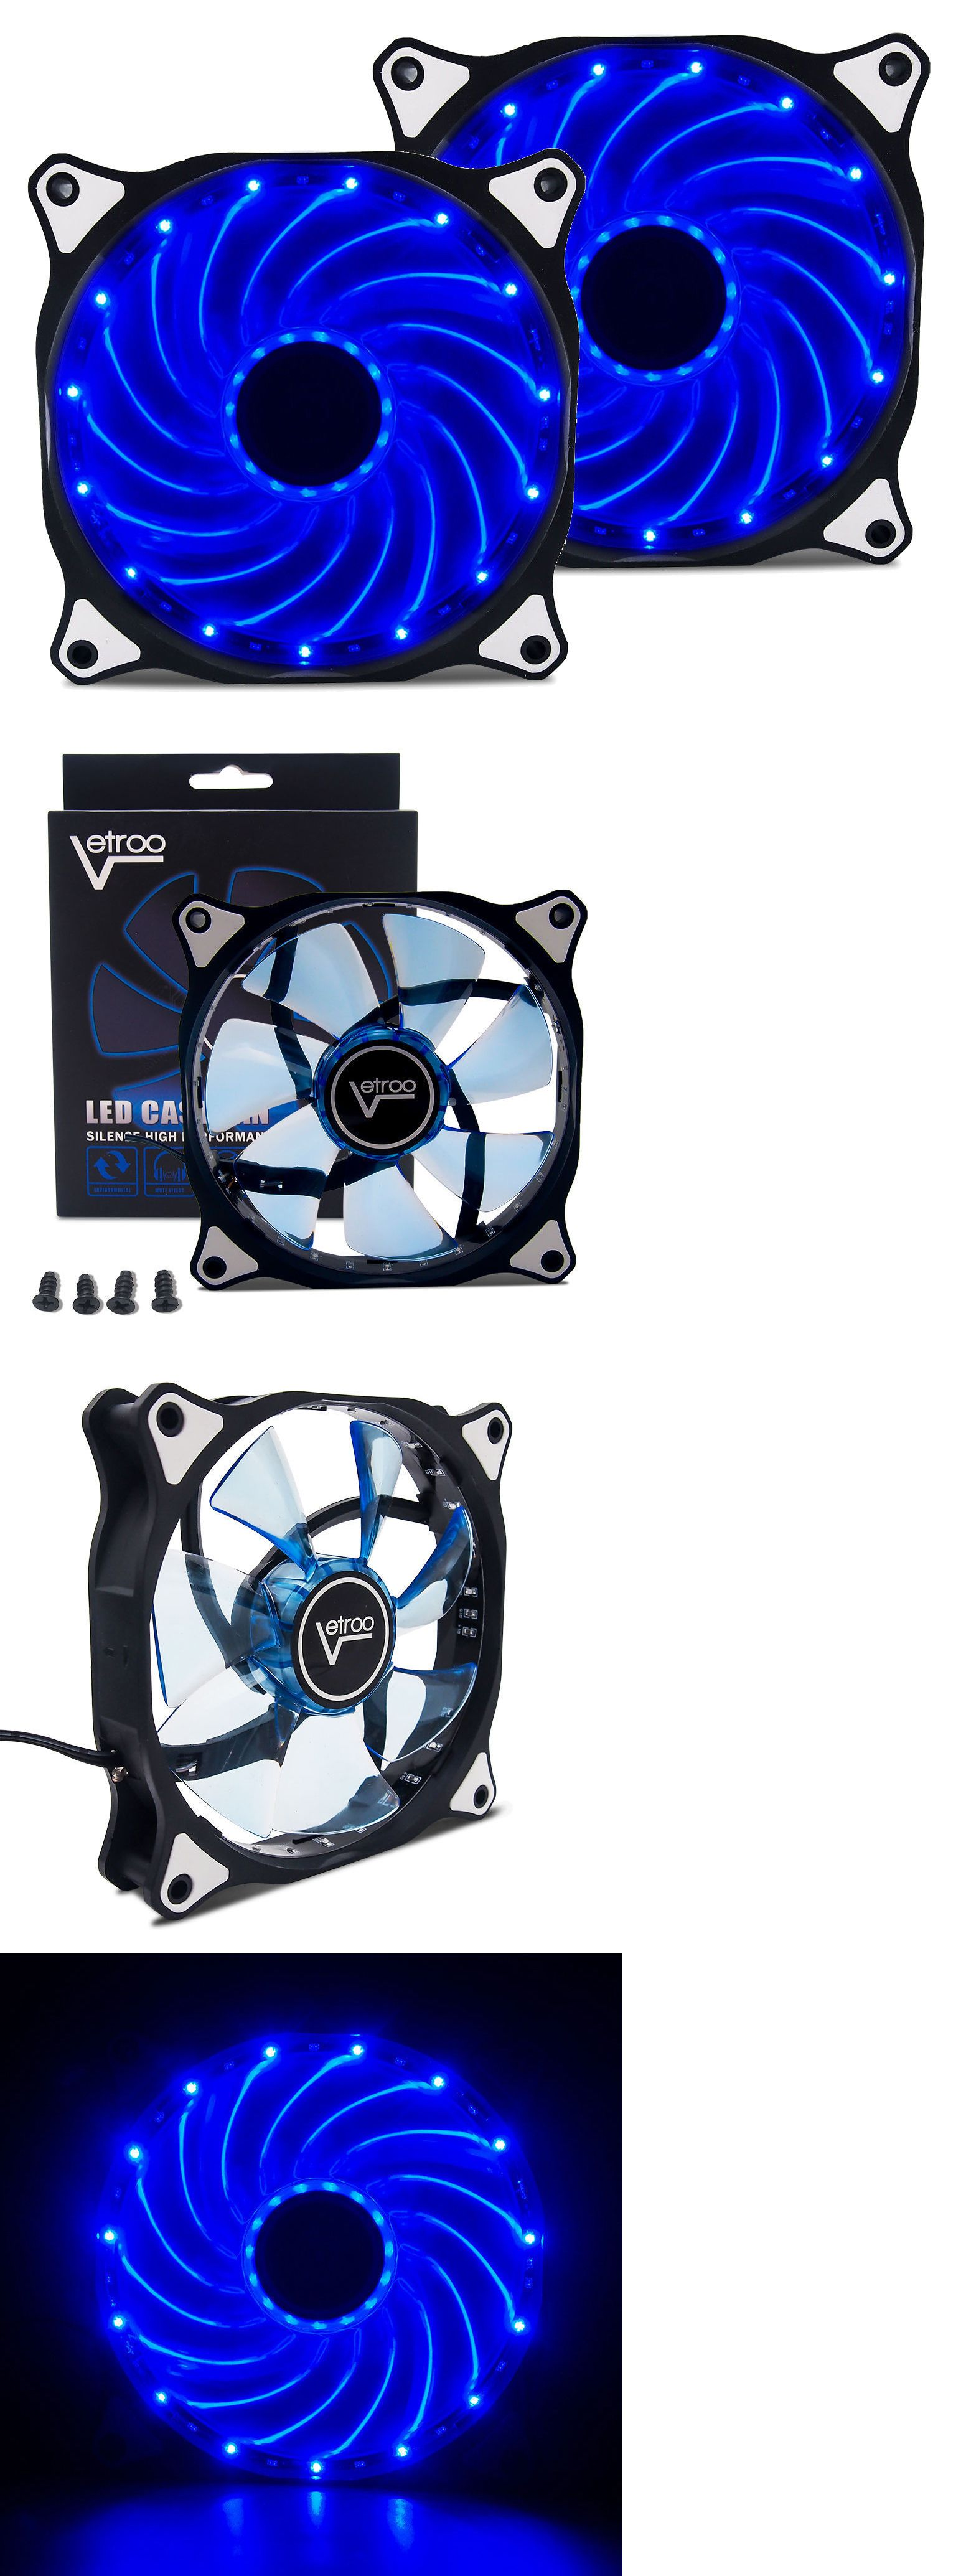 2 Pack 120mm Blue Led Computer Pc Case Cooling Fan Quiet Sleeve Bearing Vetroo Pc Cases Pc Computer Cooling Fan